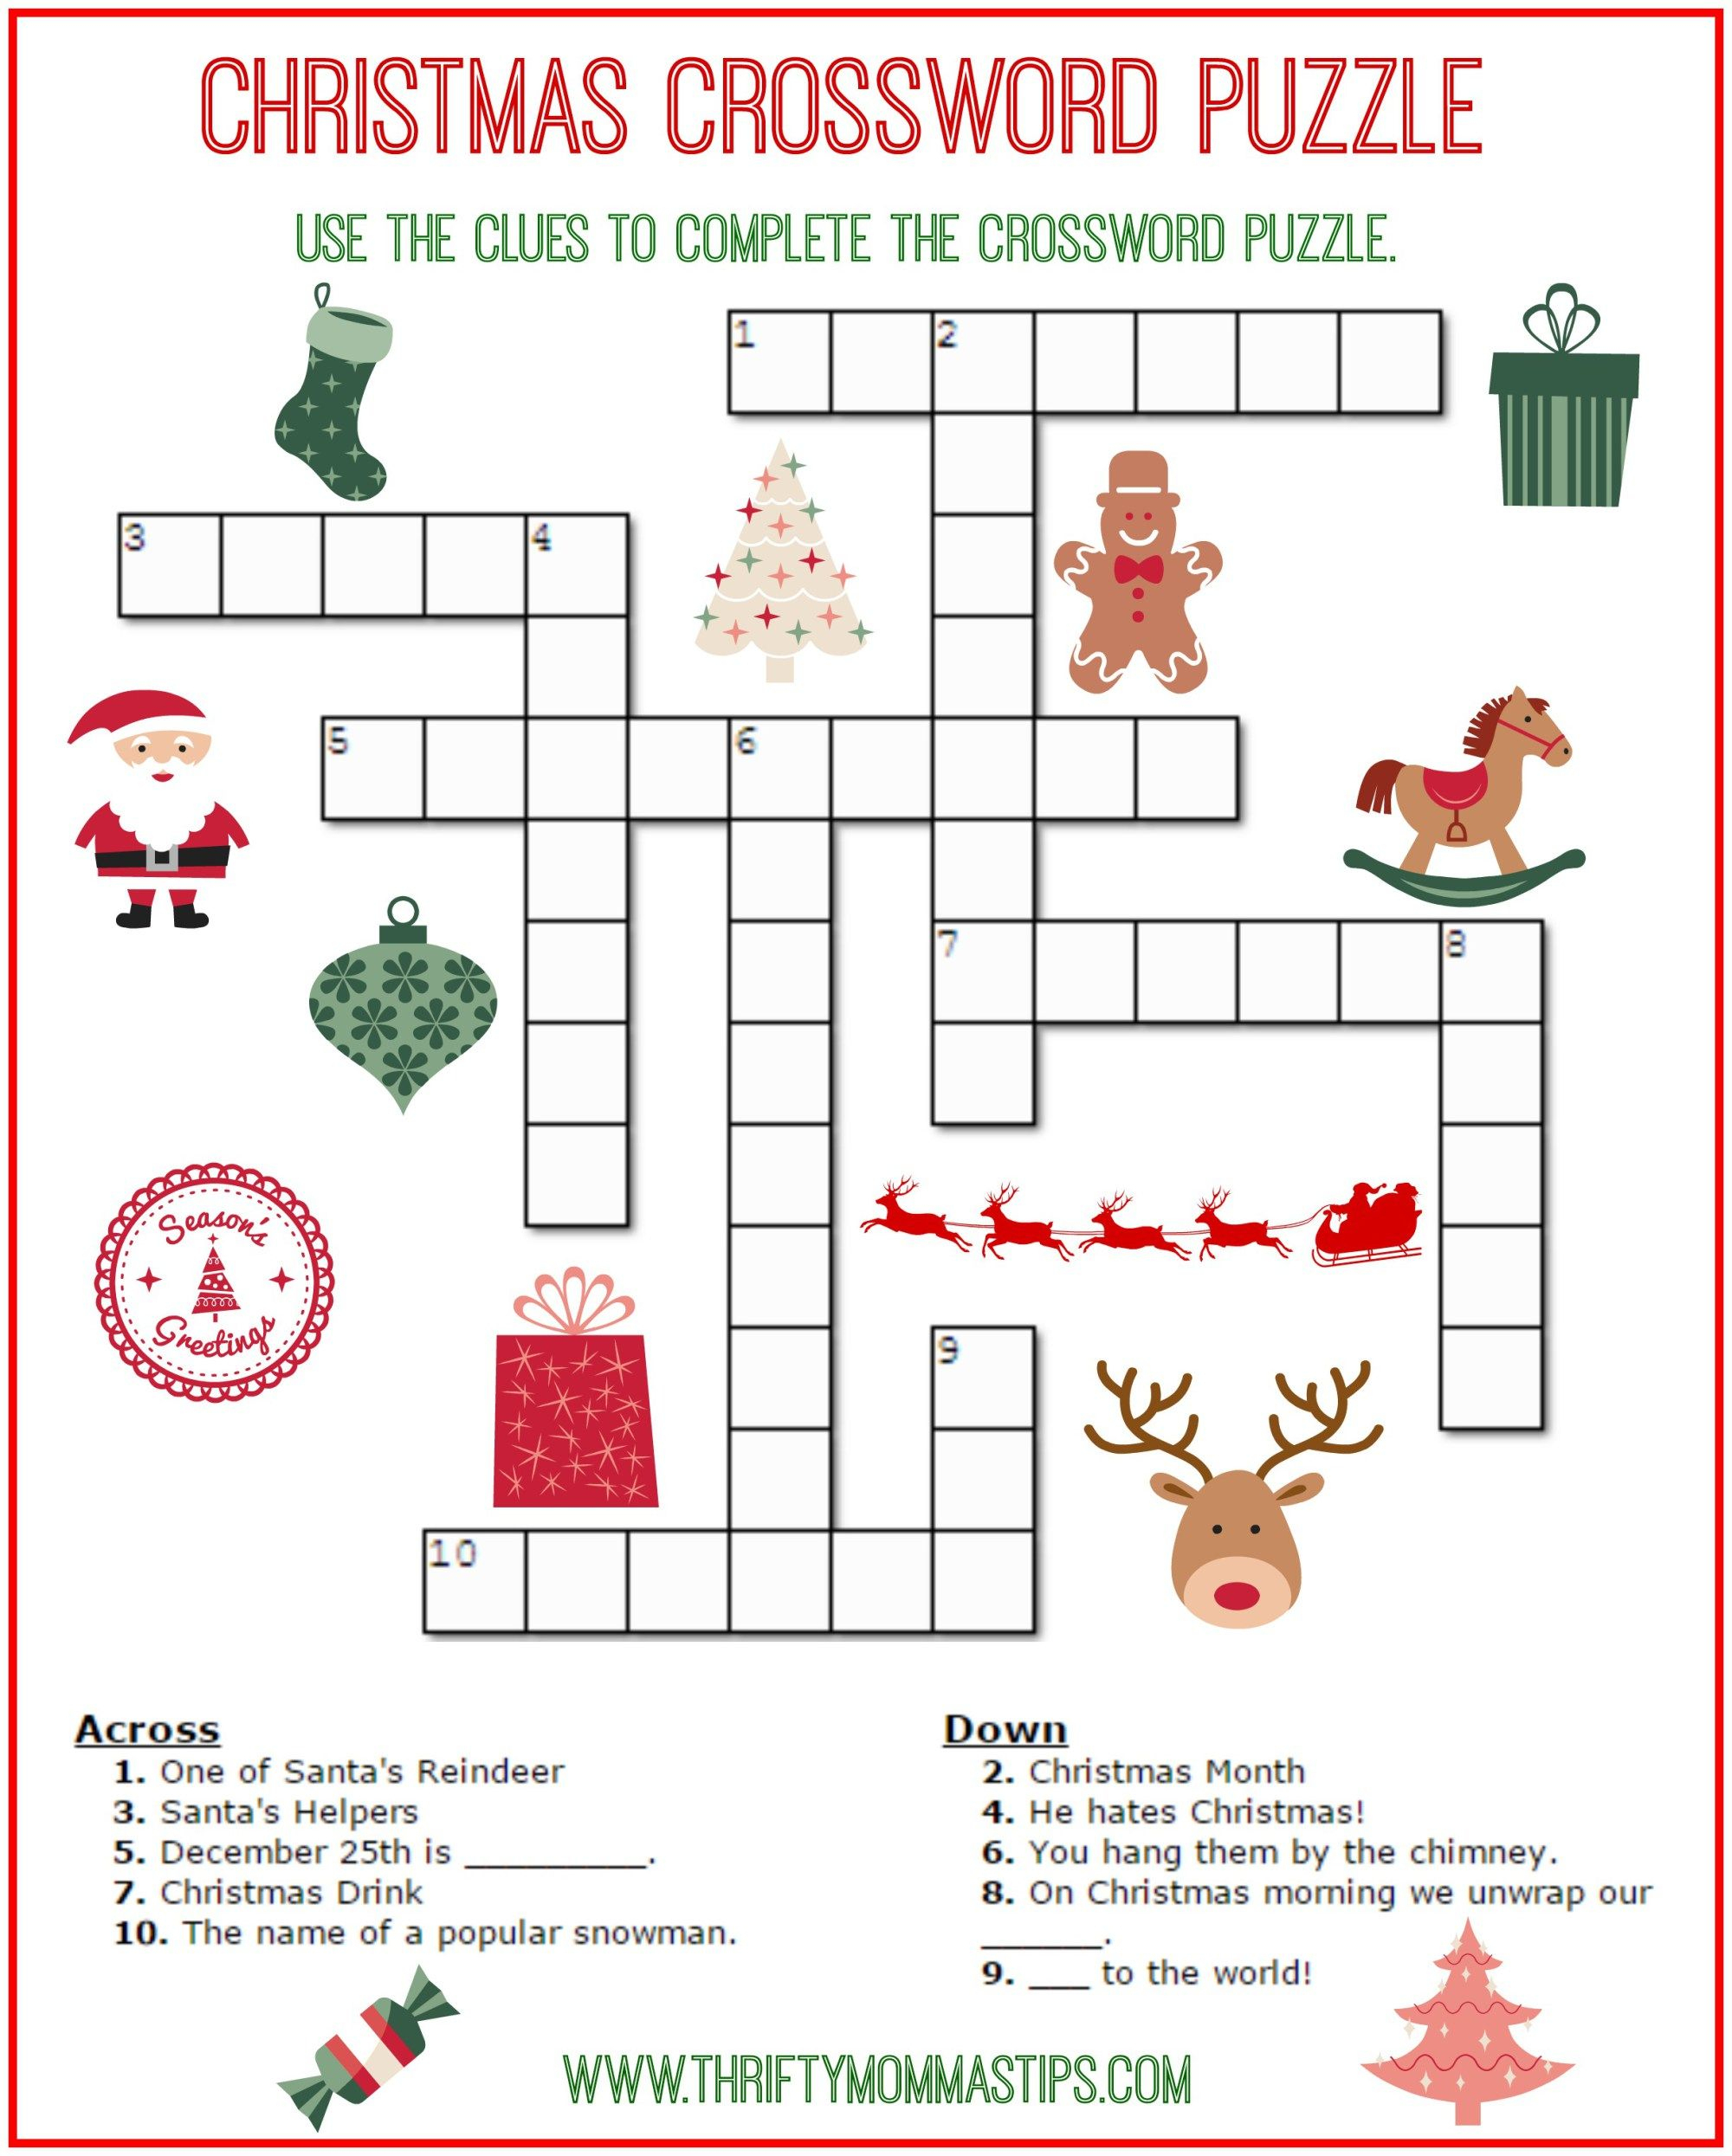 Christmas Crossword Puzzle Printable - Thrifty Momma's Tips - Printable Christmas Logic Puzzle